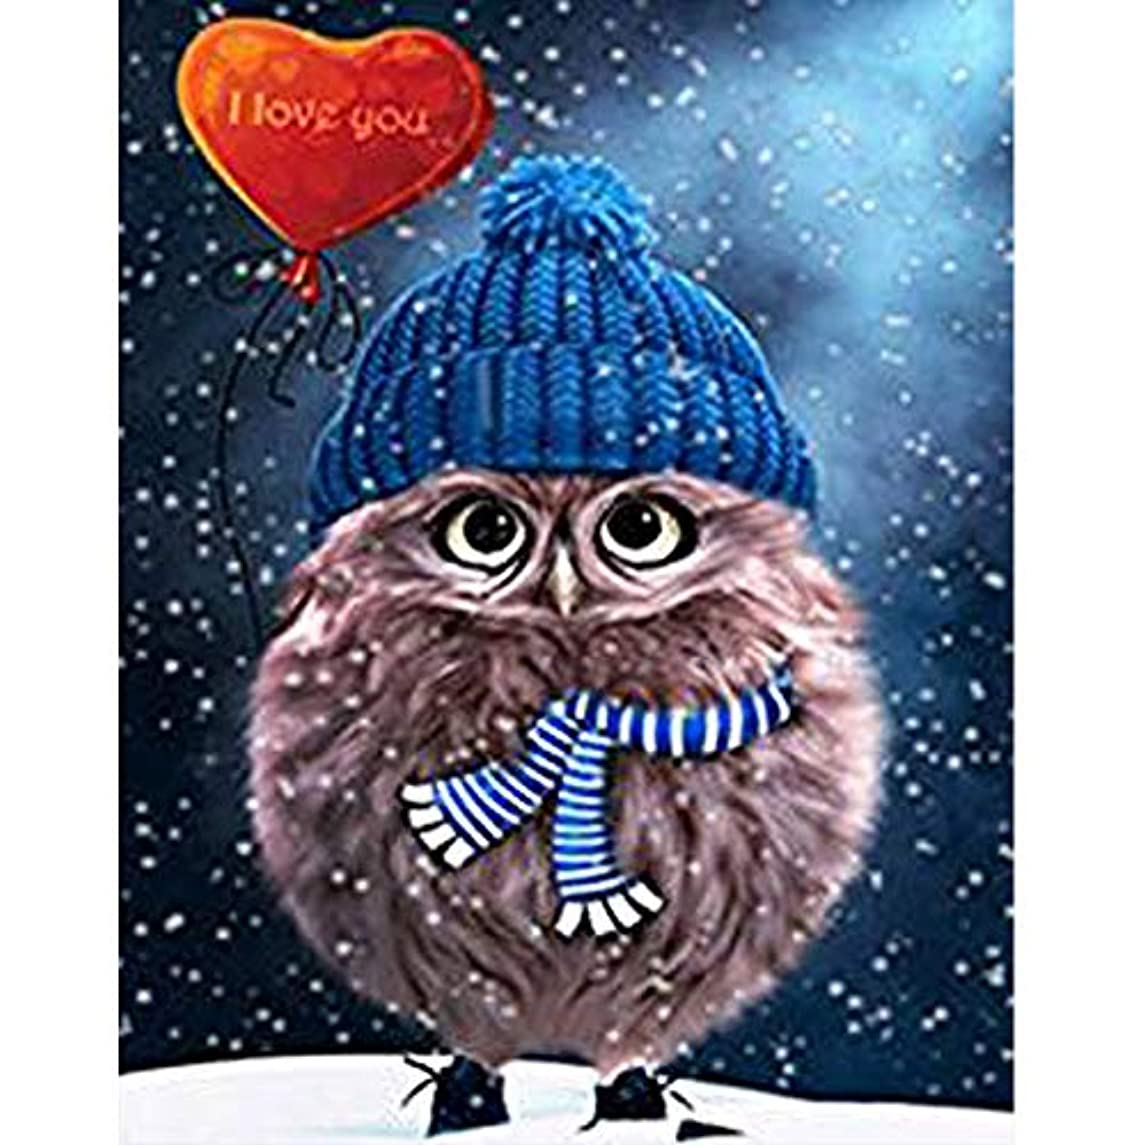 Diamond Painting Kits, DIY 5D Square Full Drill Art Perfect for Relaxation and Home Wall Decor(Love owl,12x16inch)